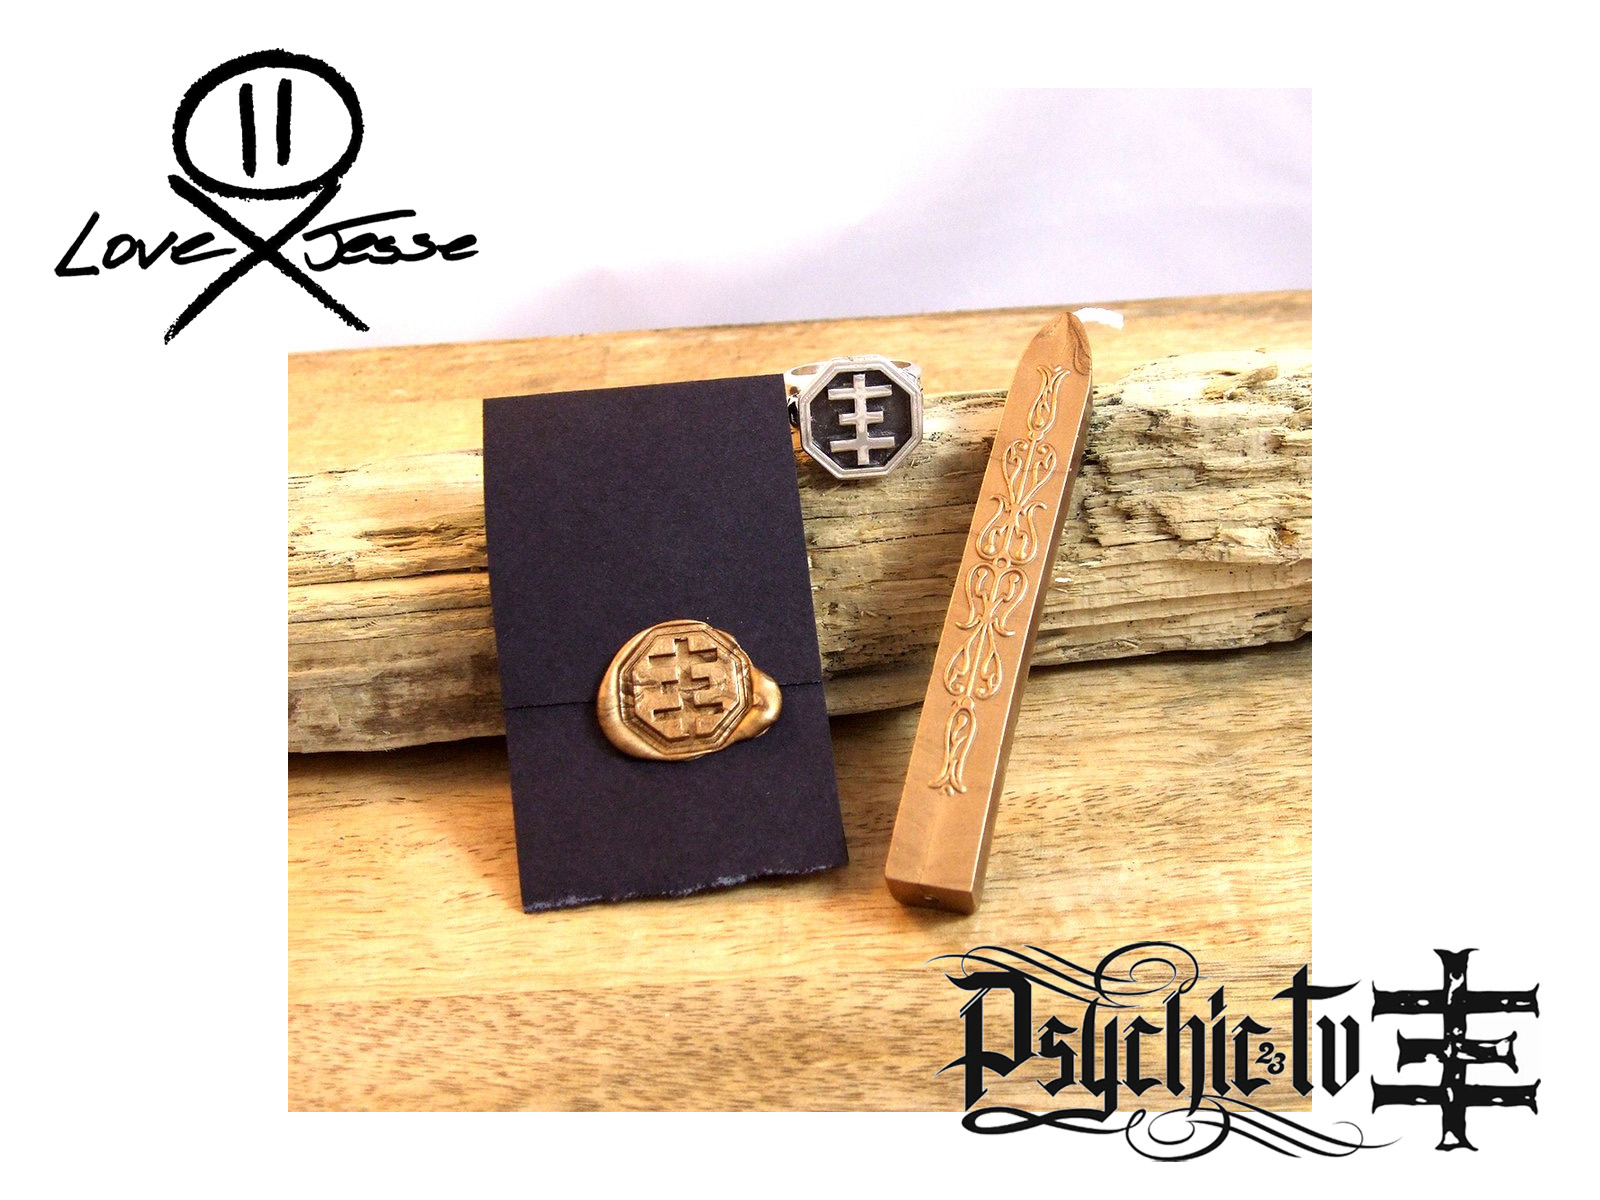 LOVE JESSE DESIGNS – Psychic Cross Signet Ring